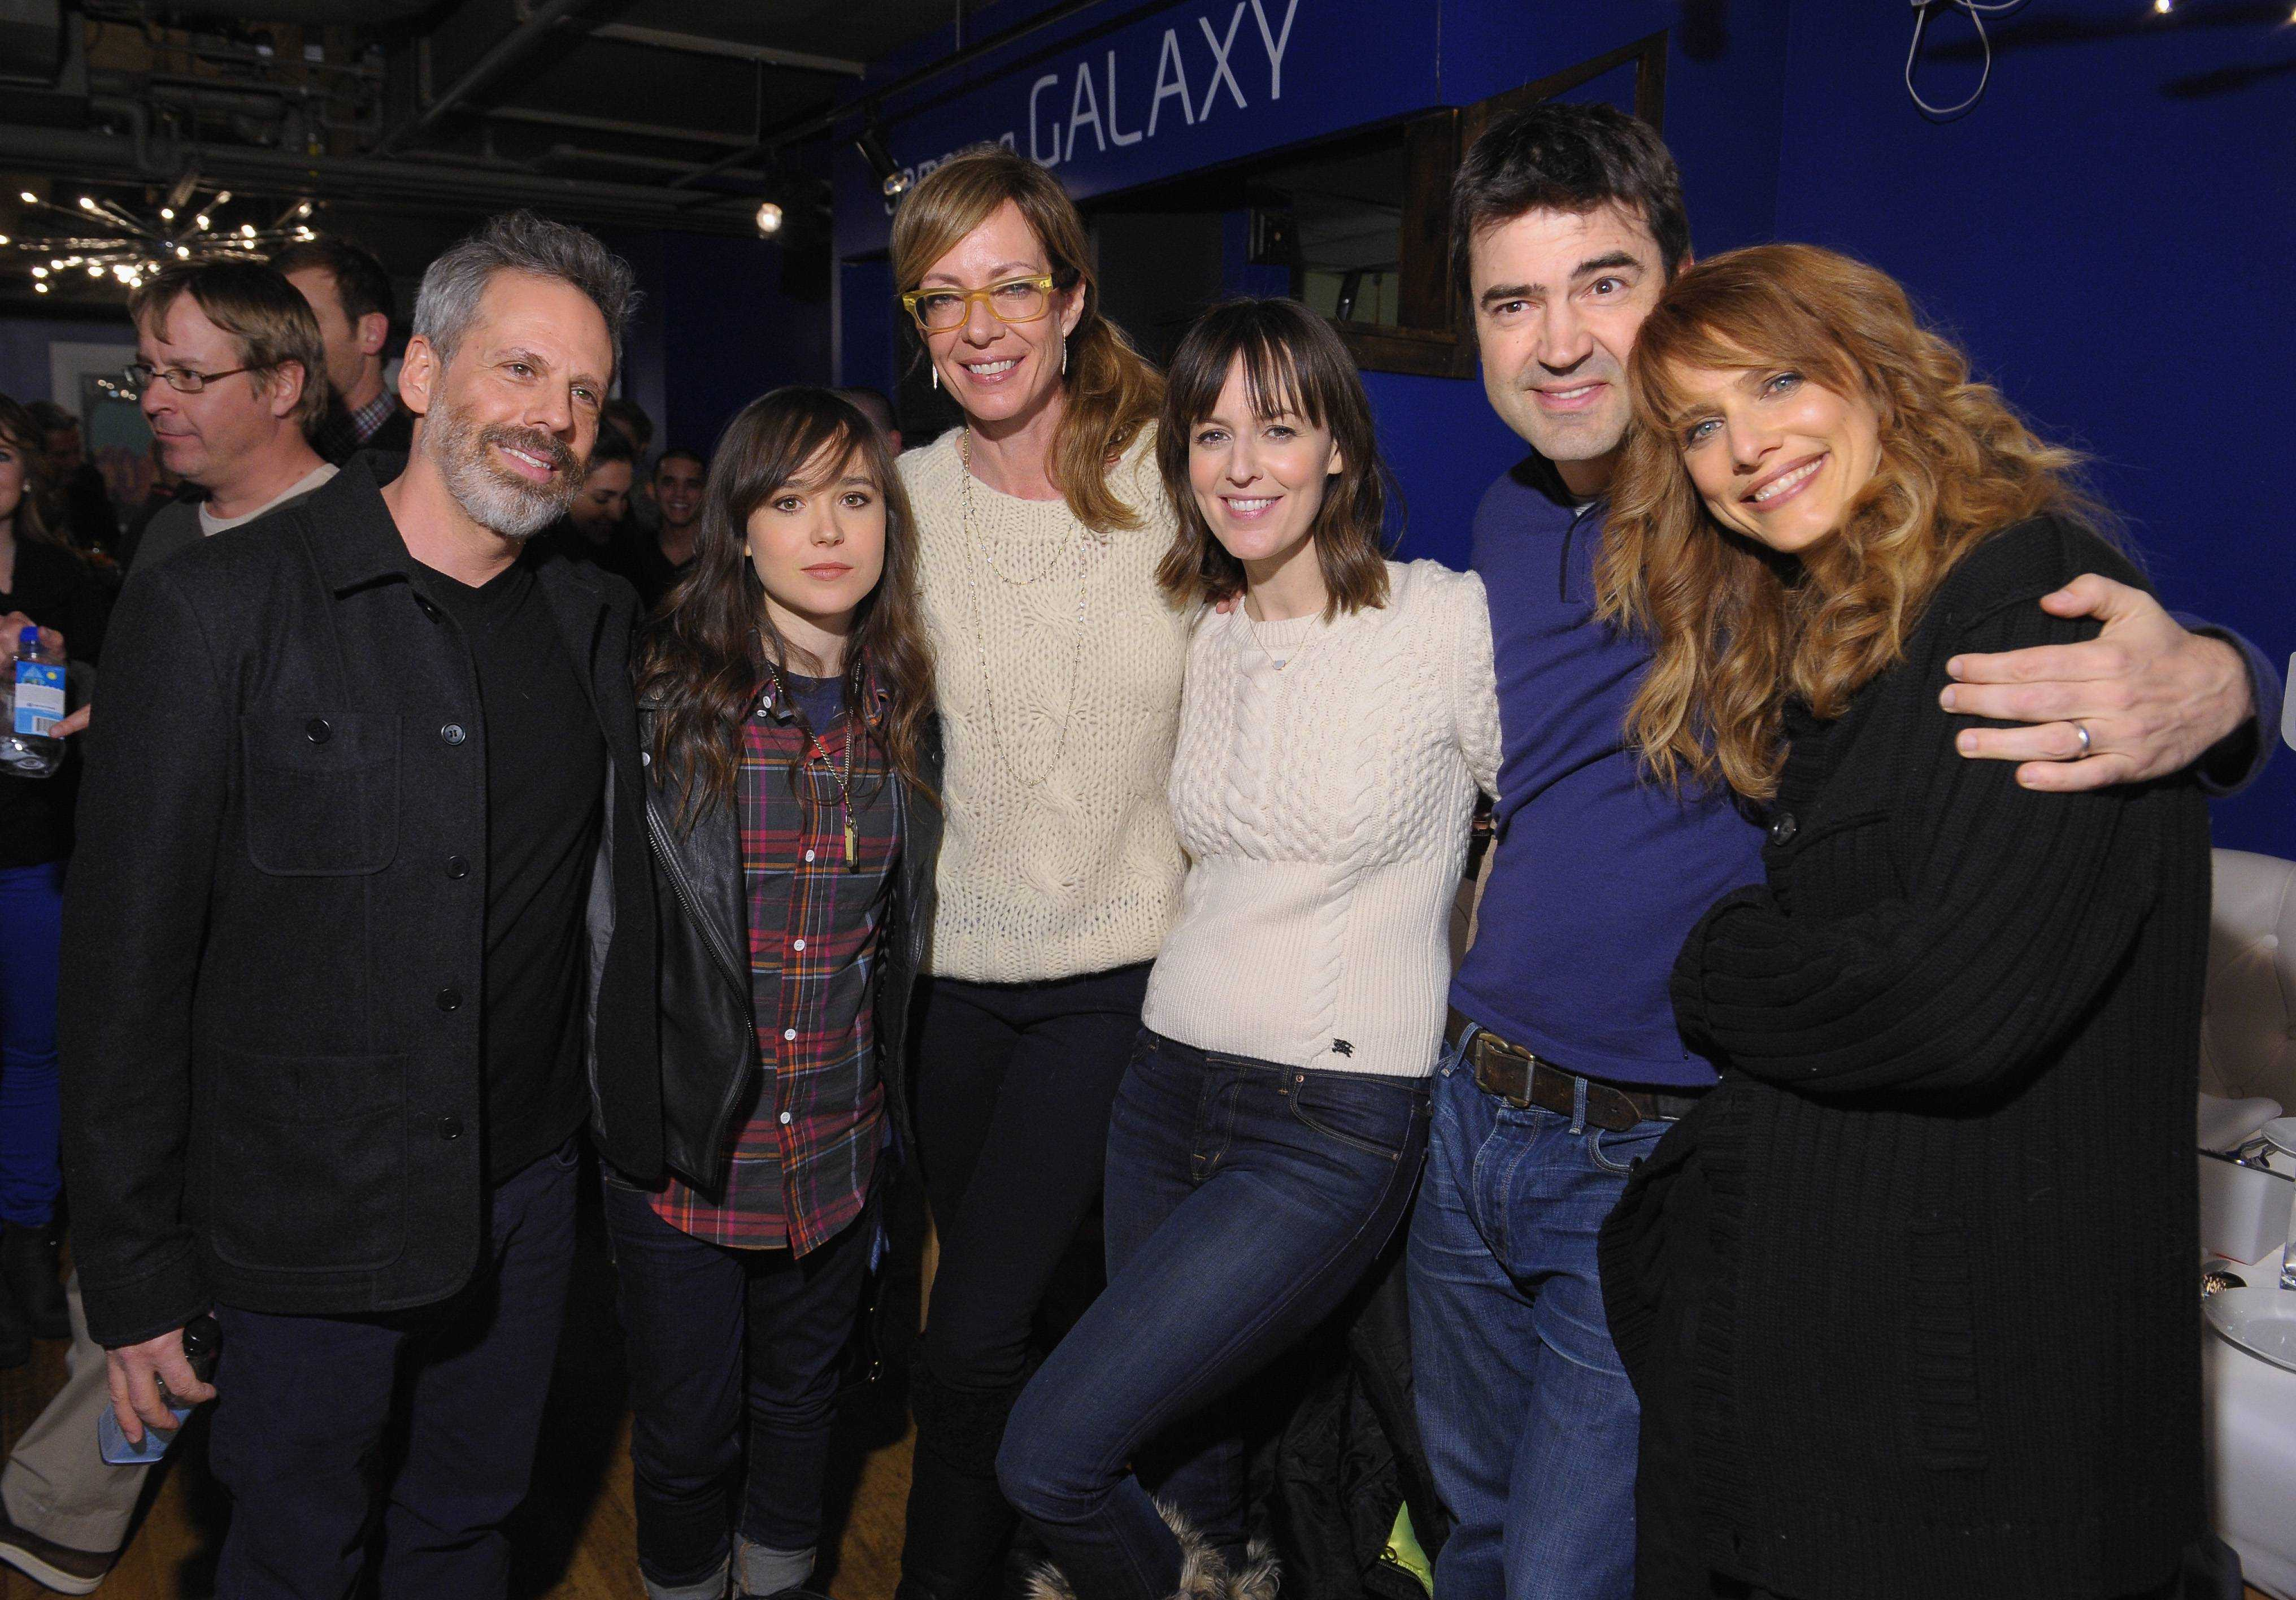 The Samsung Galaxy Lounge Hosts Cast Dinners For